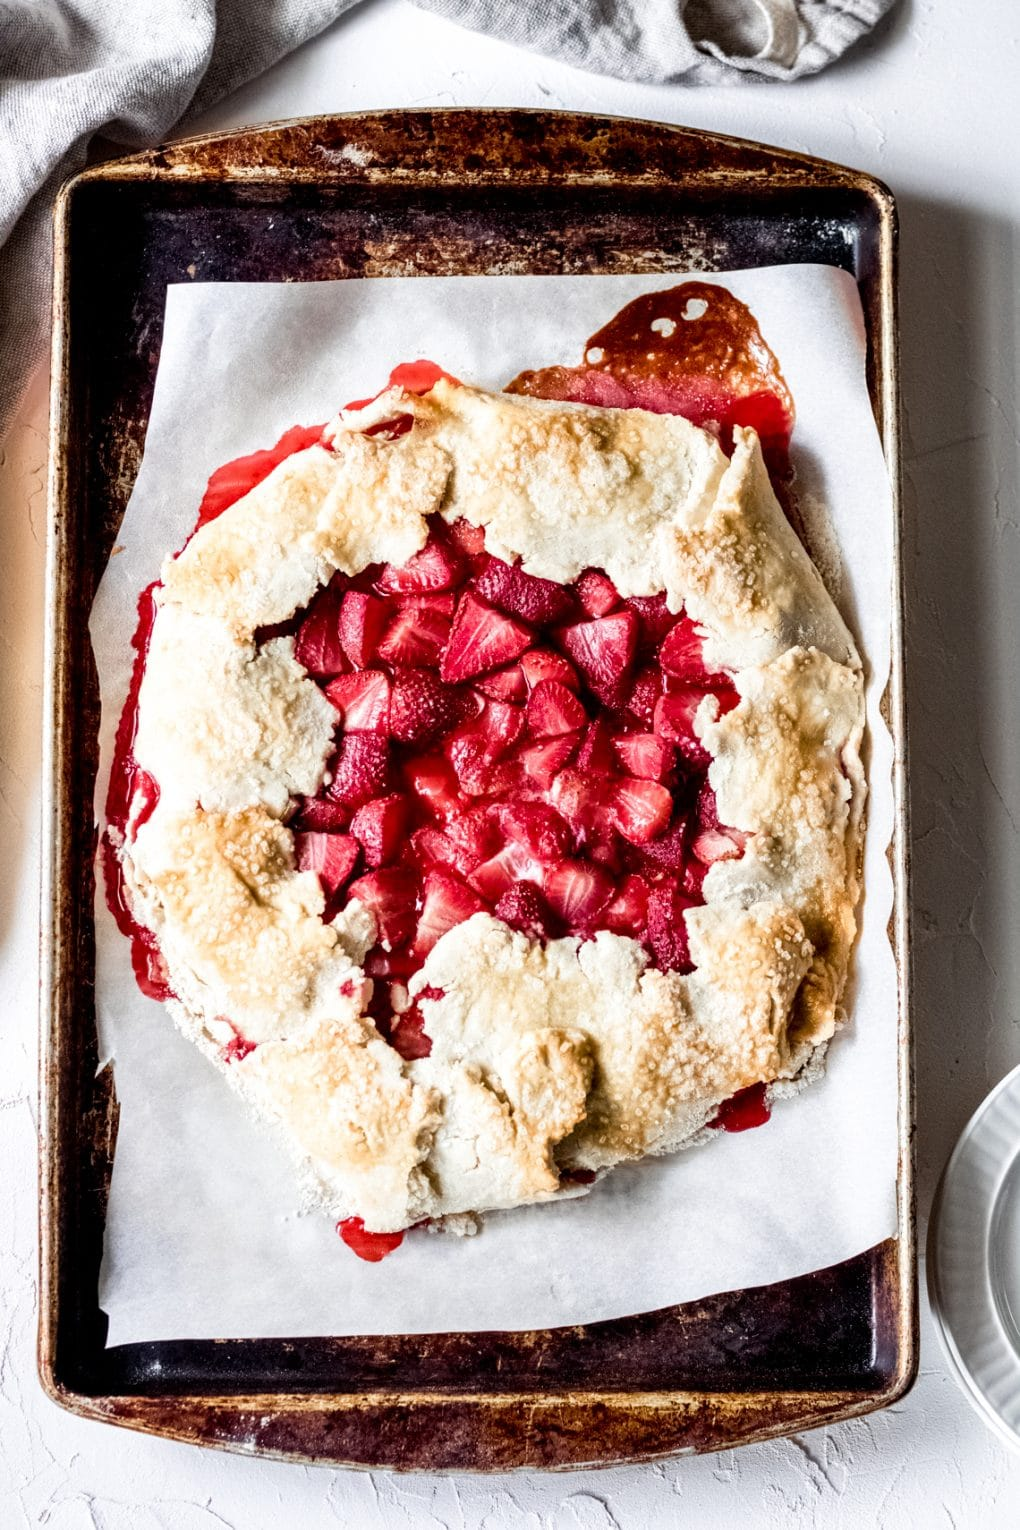 a baked gluten-free strawberry galette